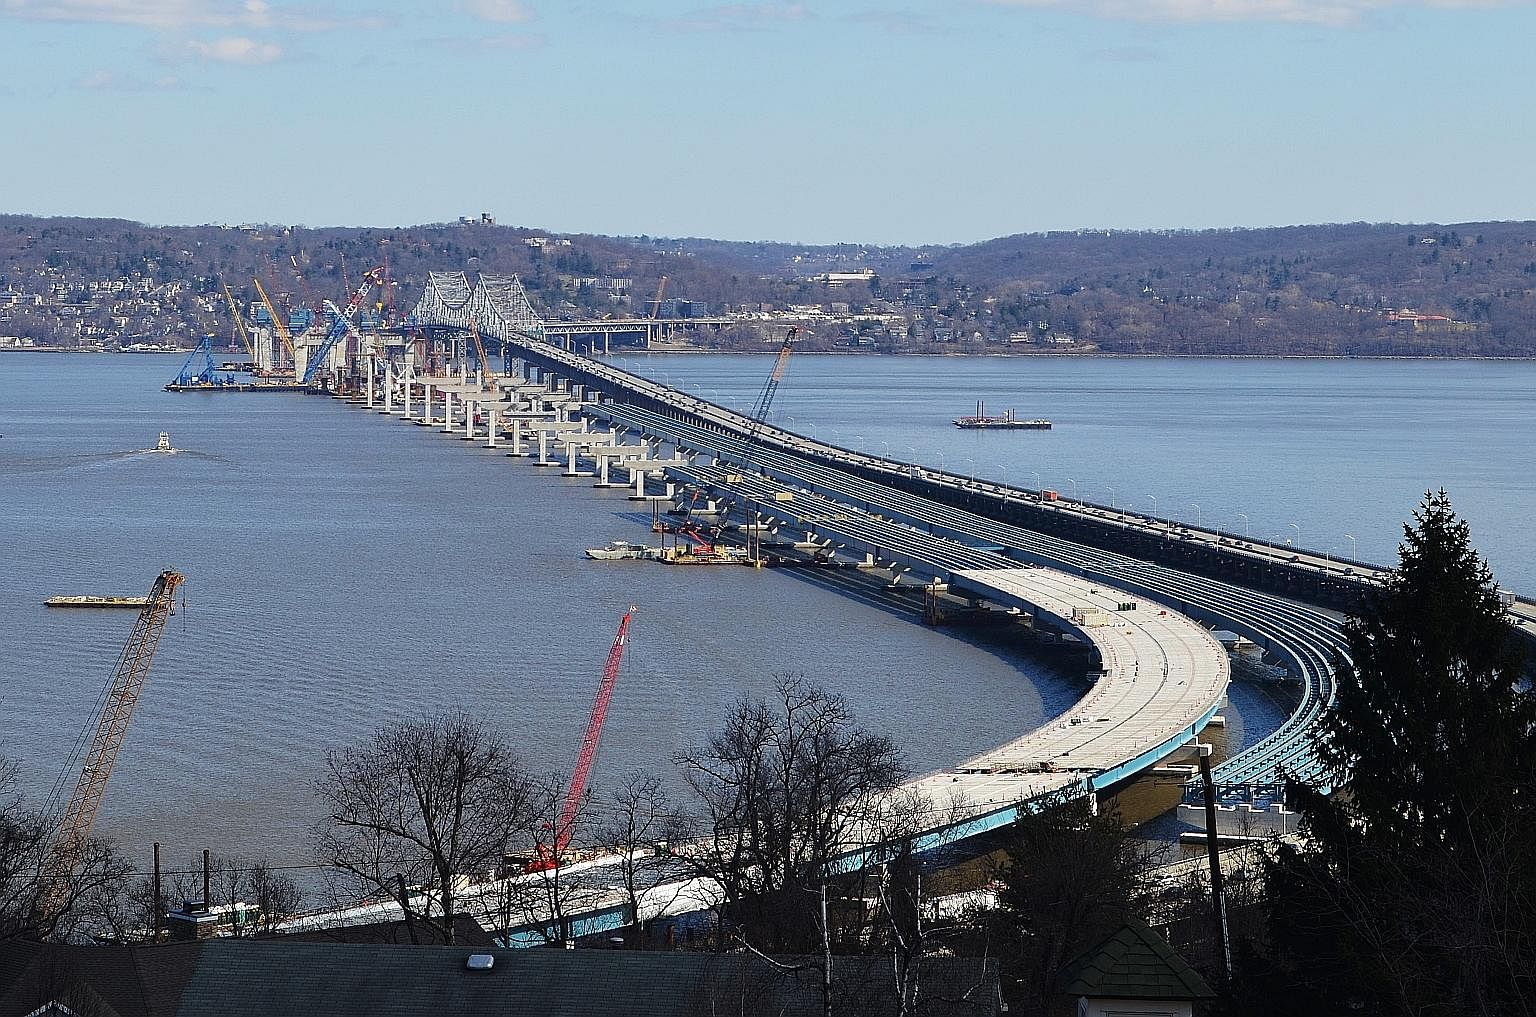 The New NY Bridge, to be completed next year, will replace the Tappan Zee Bridge over the Hudson River, built in 1955.